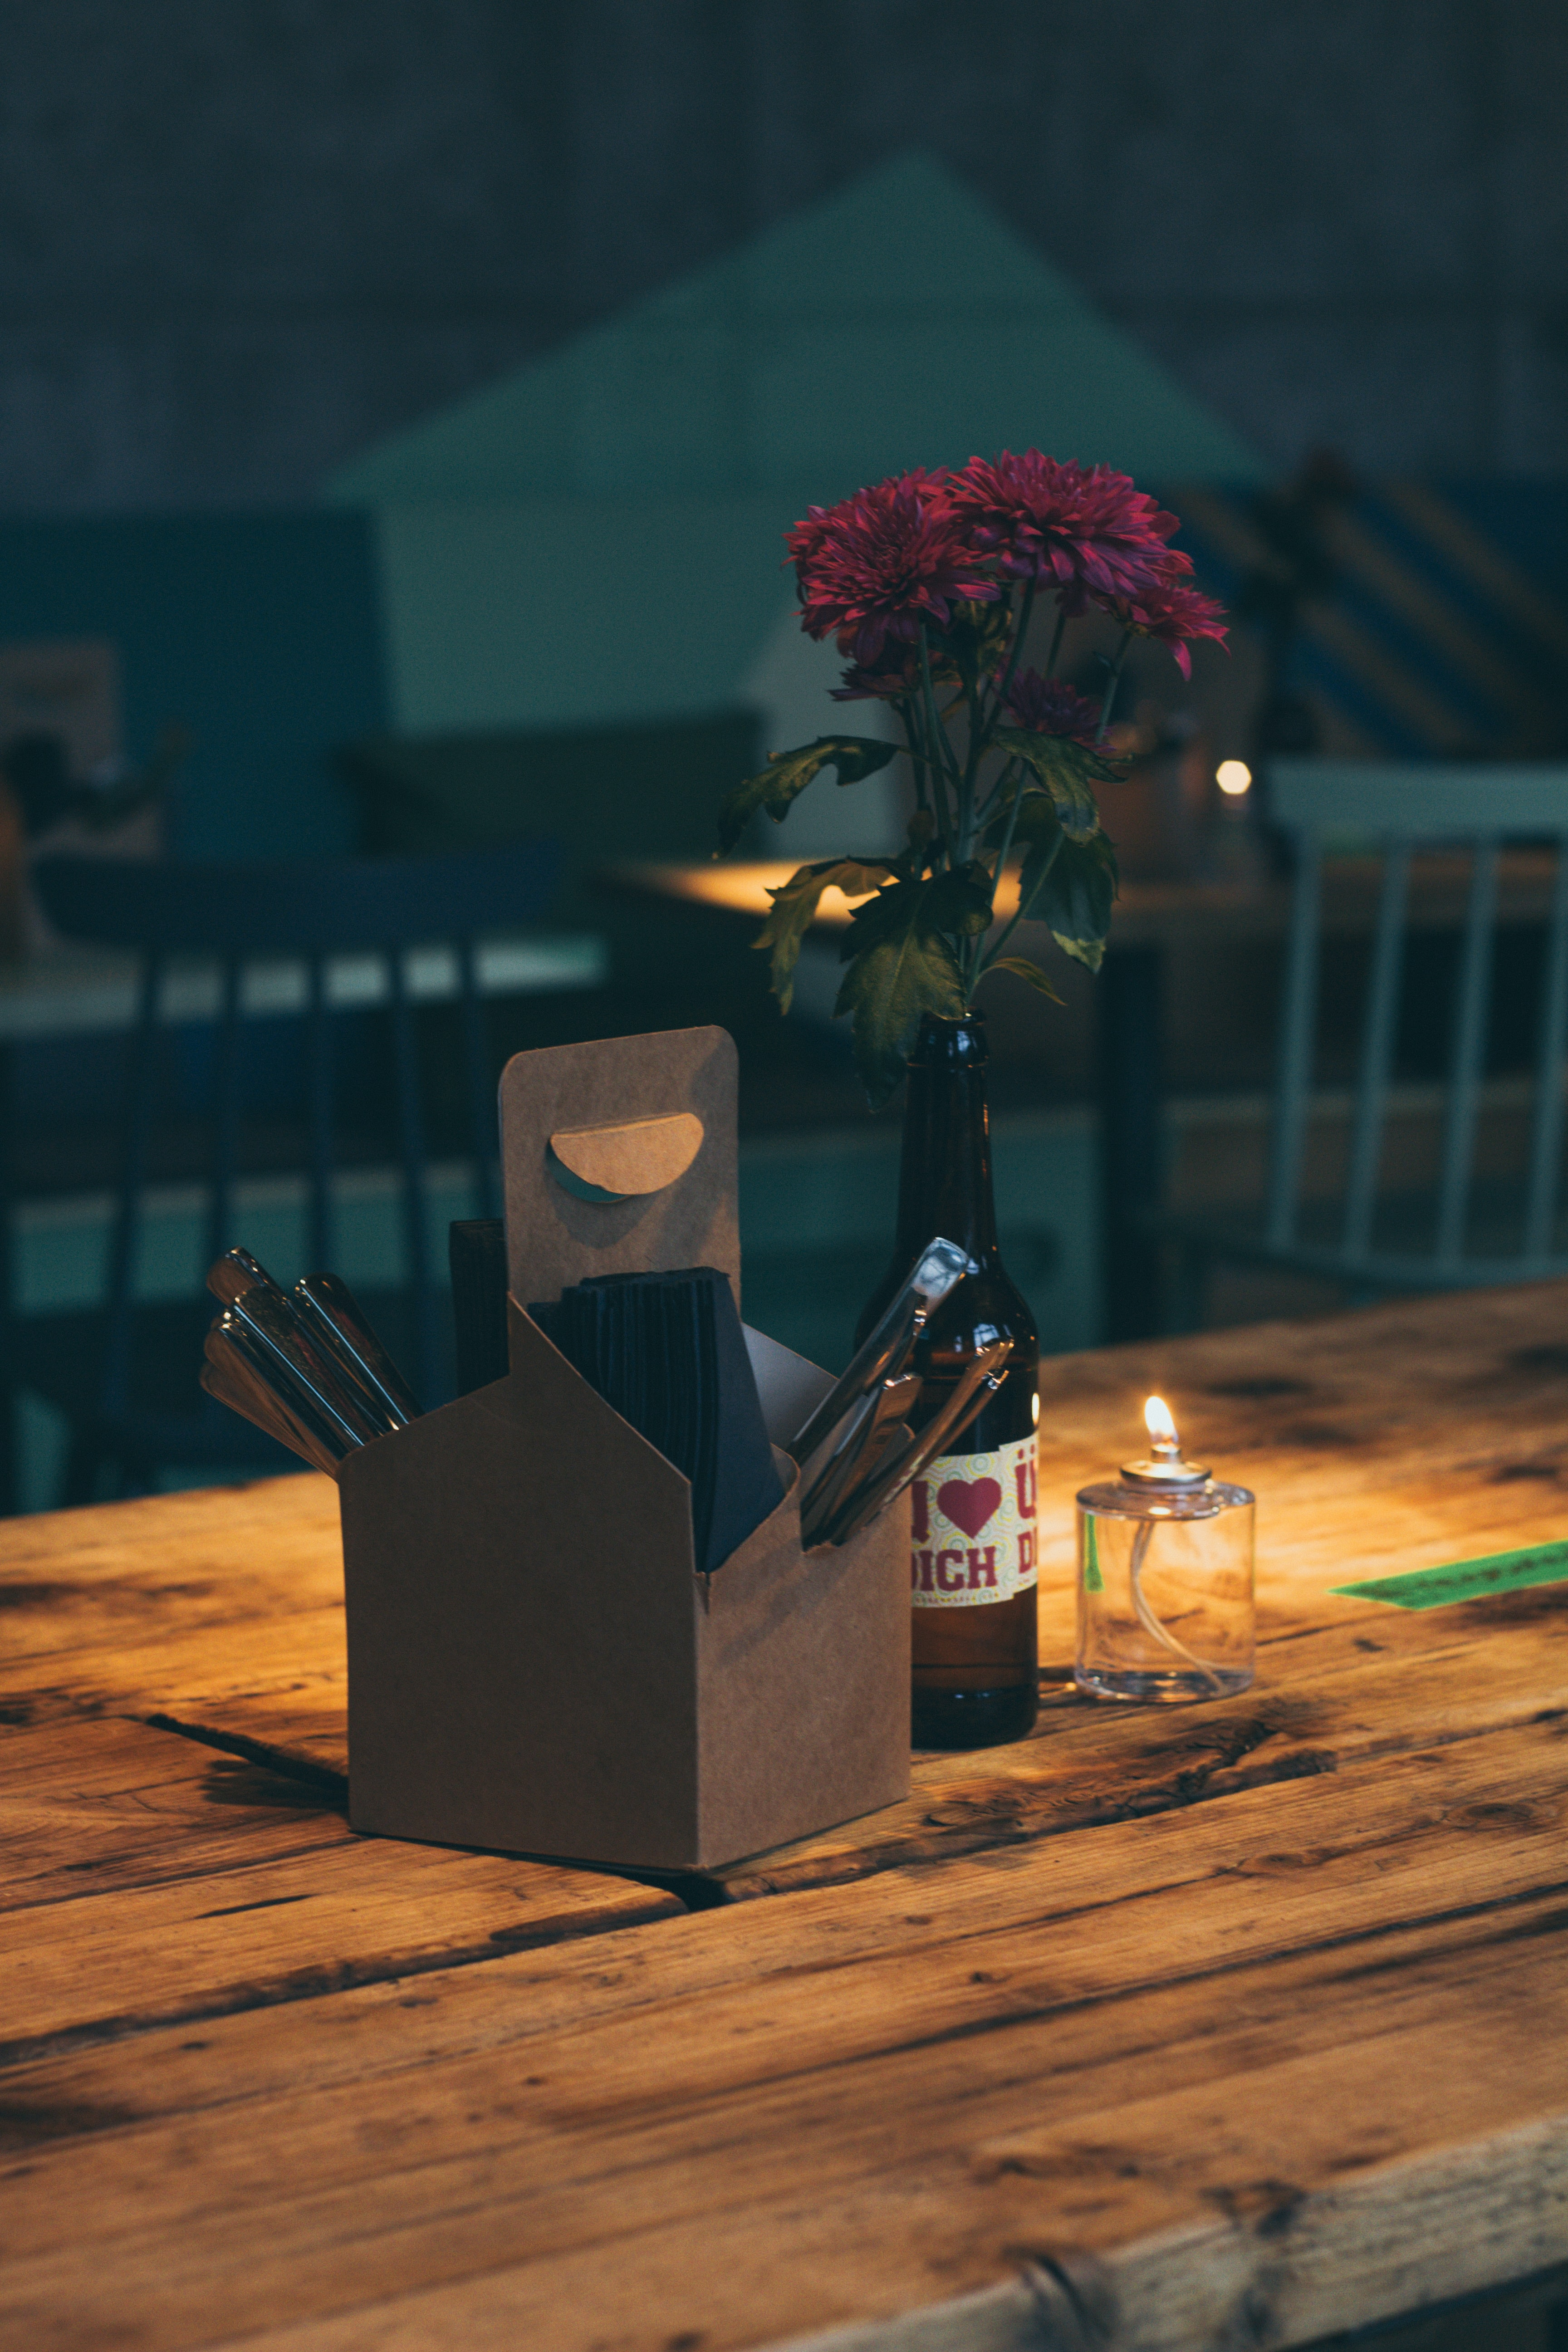 brown box beside bottle on brown wooden table